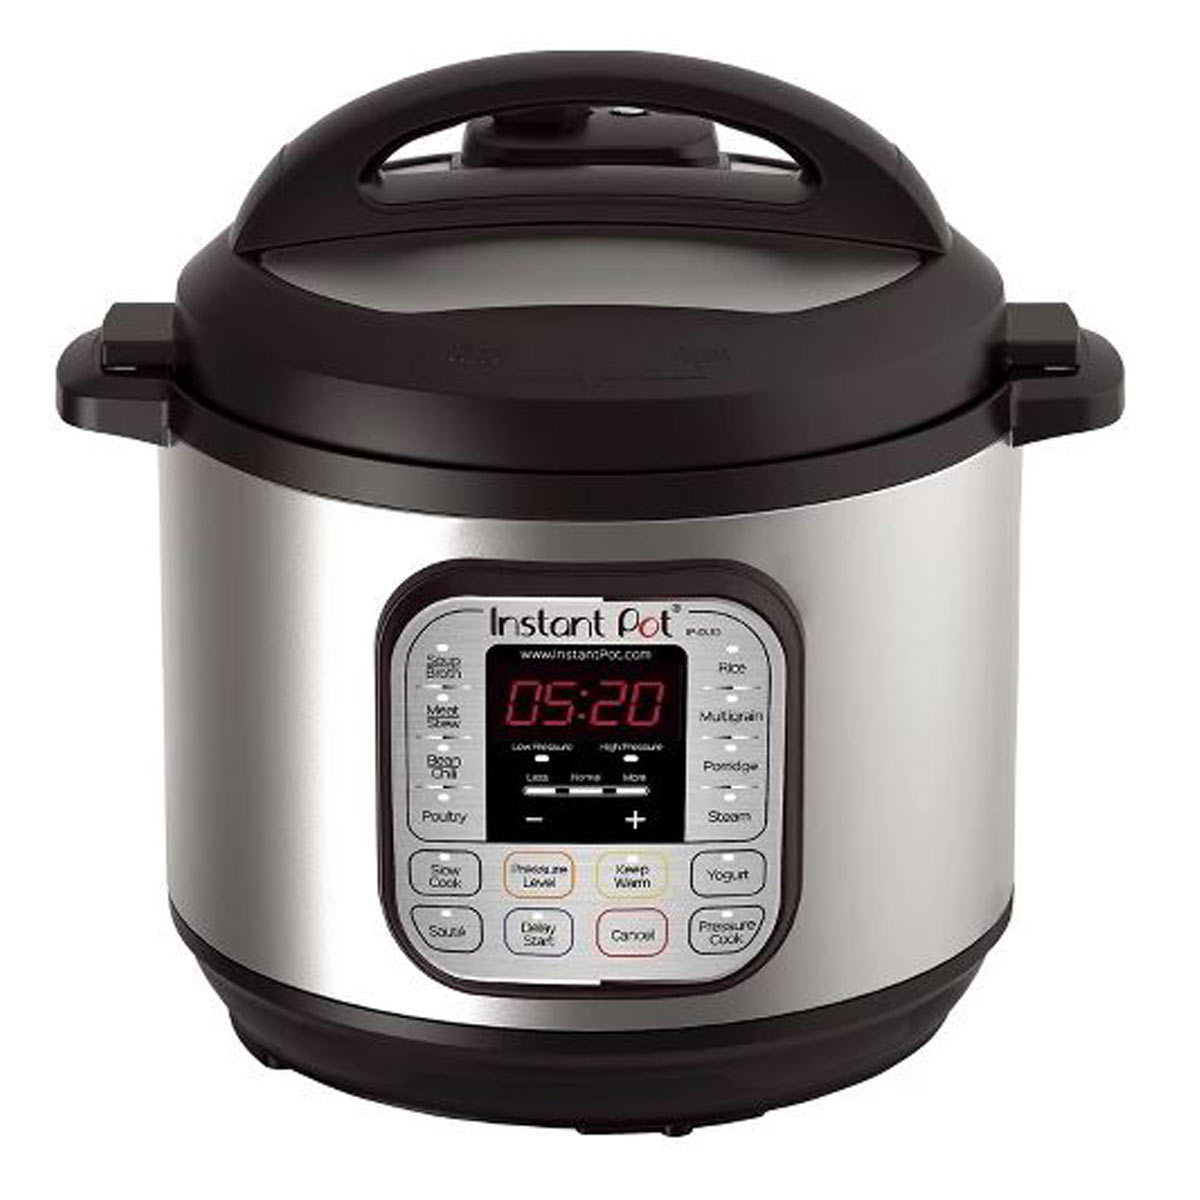 8-quart Instant Pot Duo in stainless steel photo